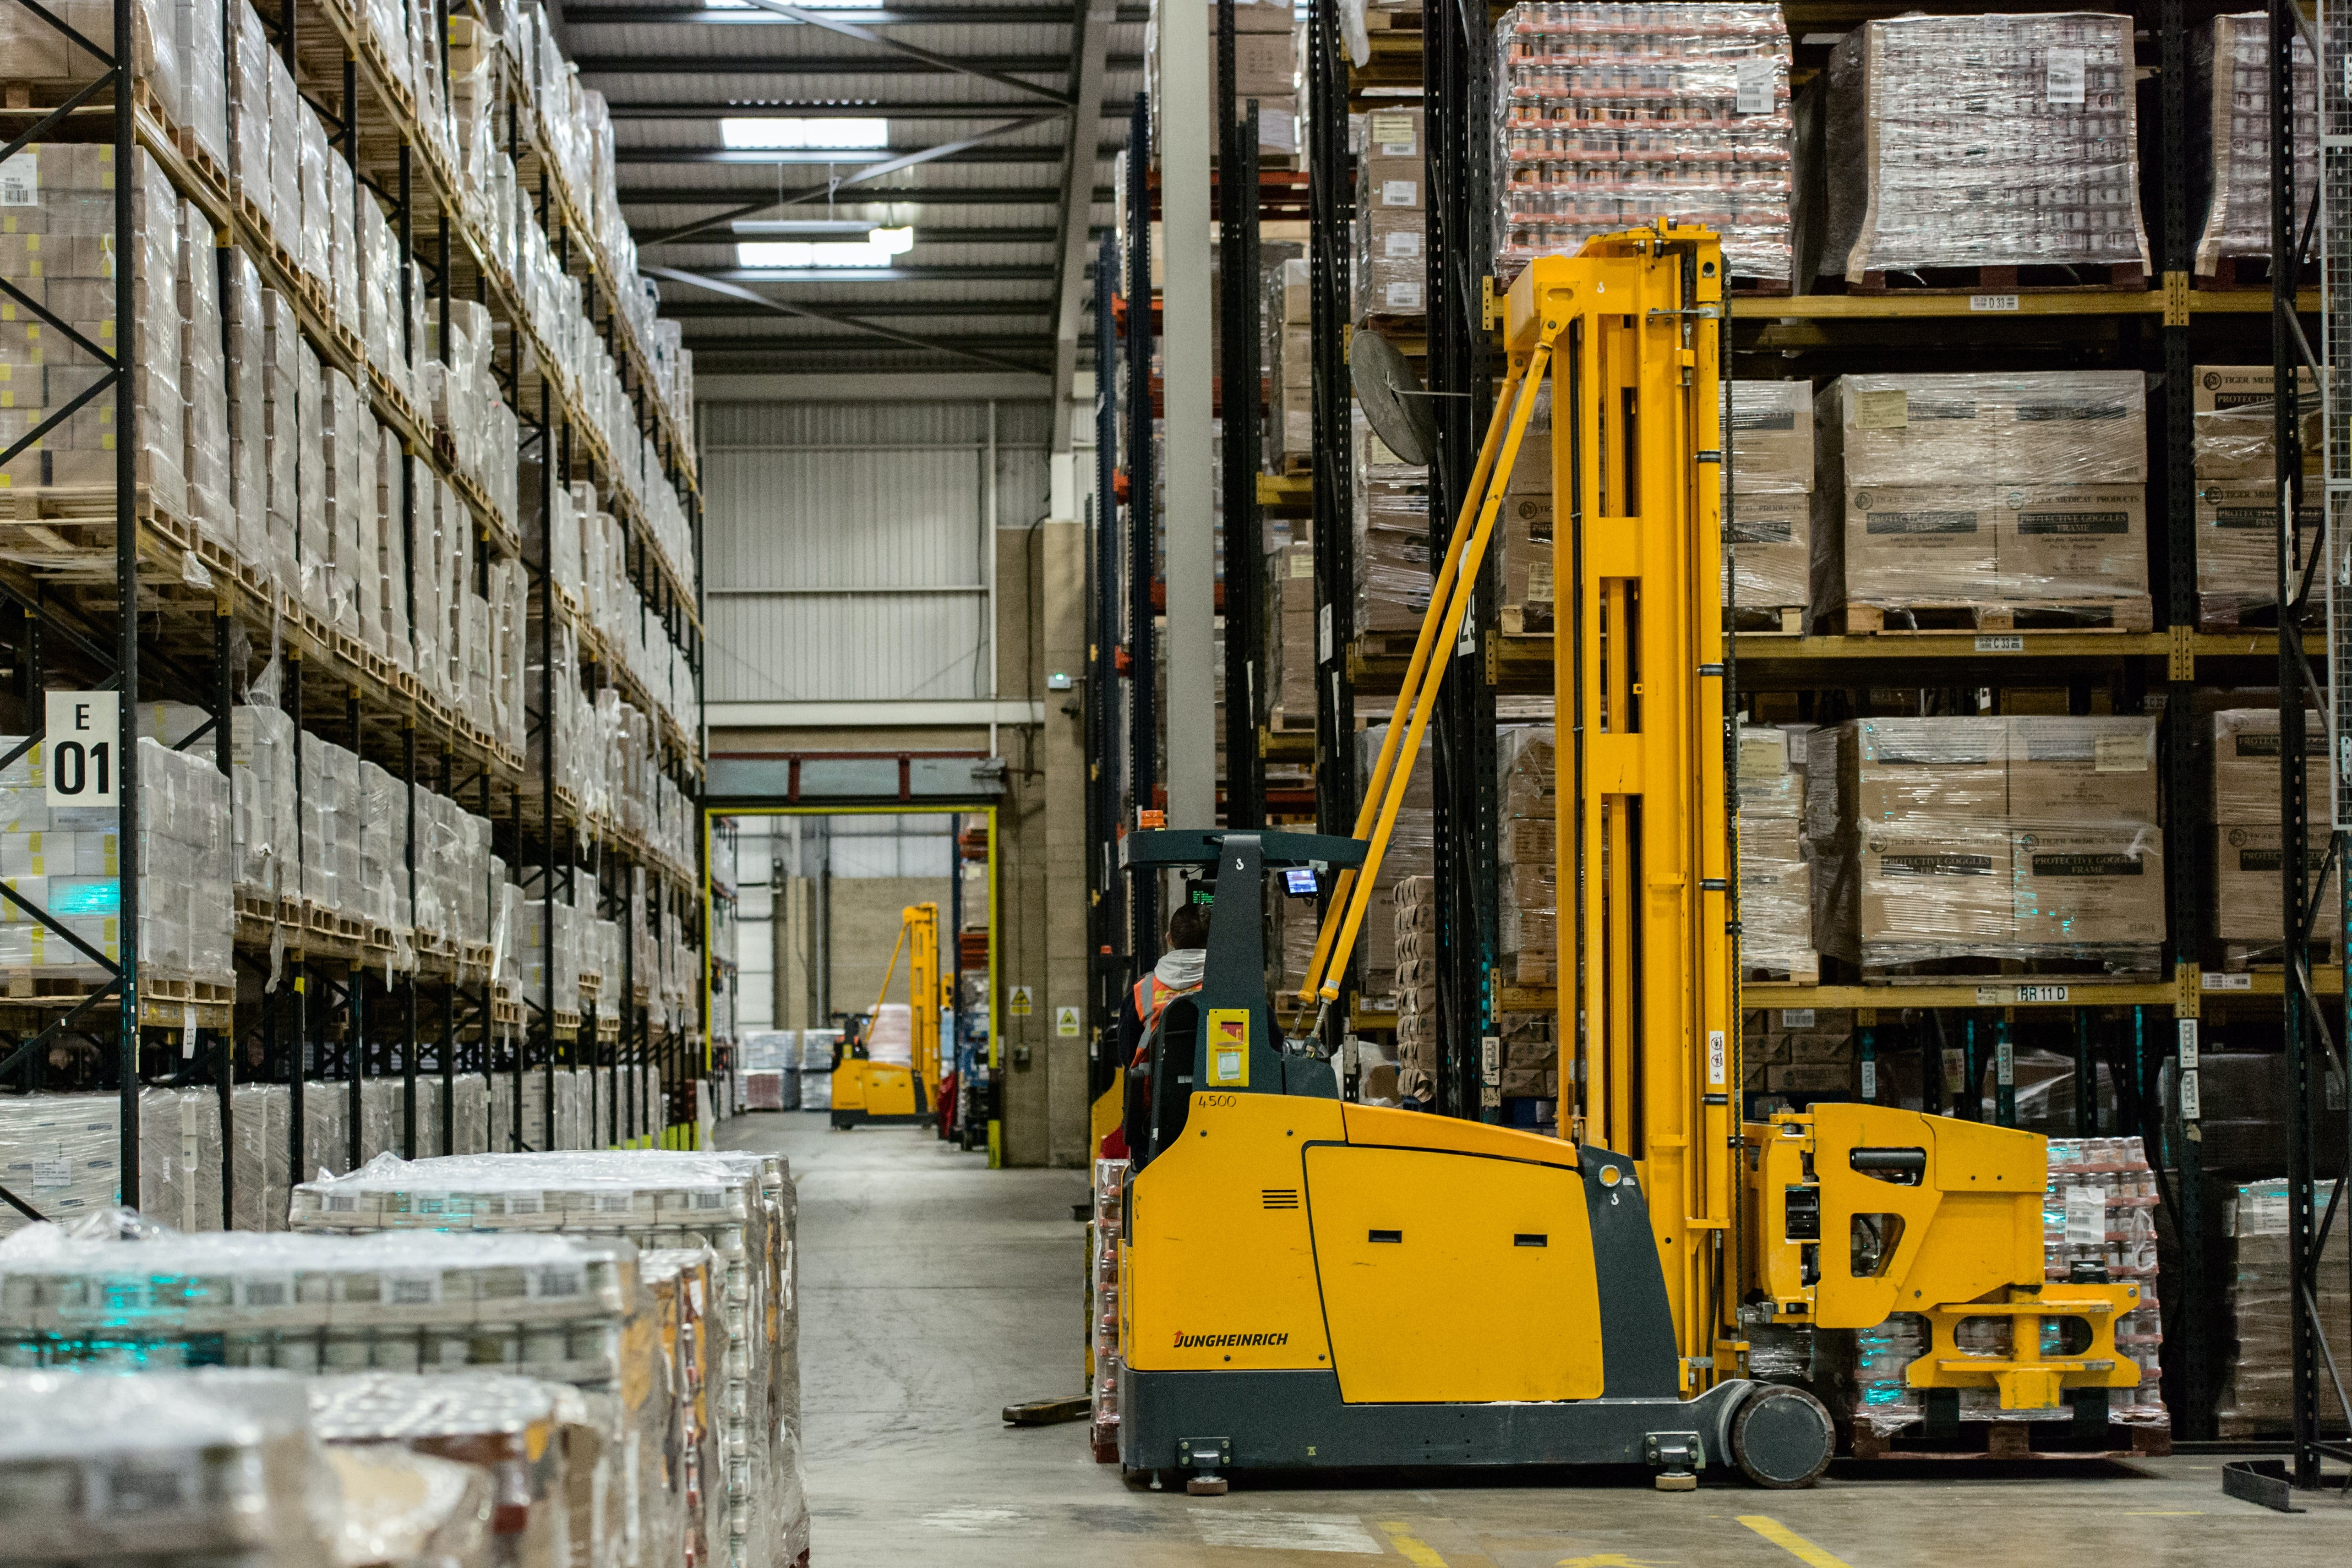 Warehouse aisle with  boxes on shelves and yellow black equipment